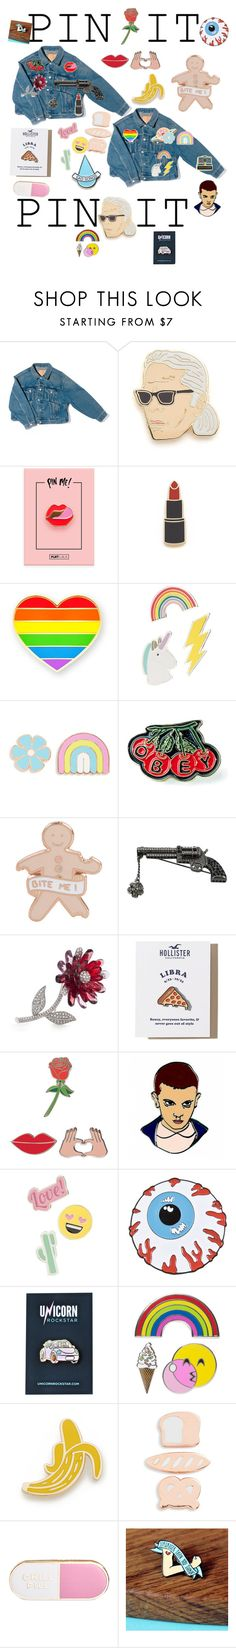 """These are a few of my favourite pins"" by gracefid-1 ❤ liked on Polyvore featuring Balenciaga, Georgia Perry, Red Camel, Big Bud Press, OBEY Clothing, Polaroid, Chanel, Carolee, Hollister Co. and iDecoz"